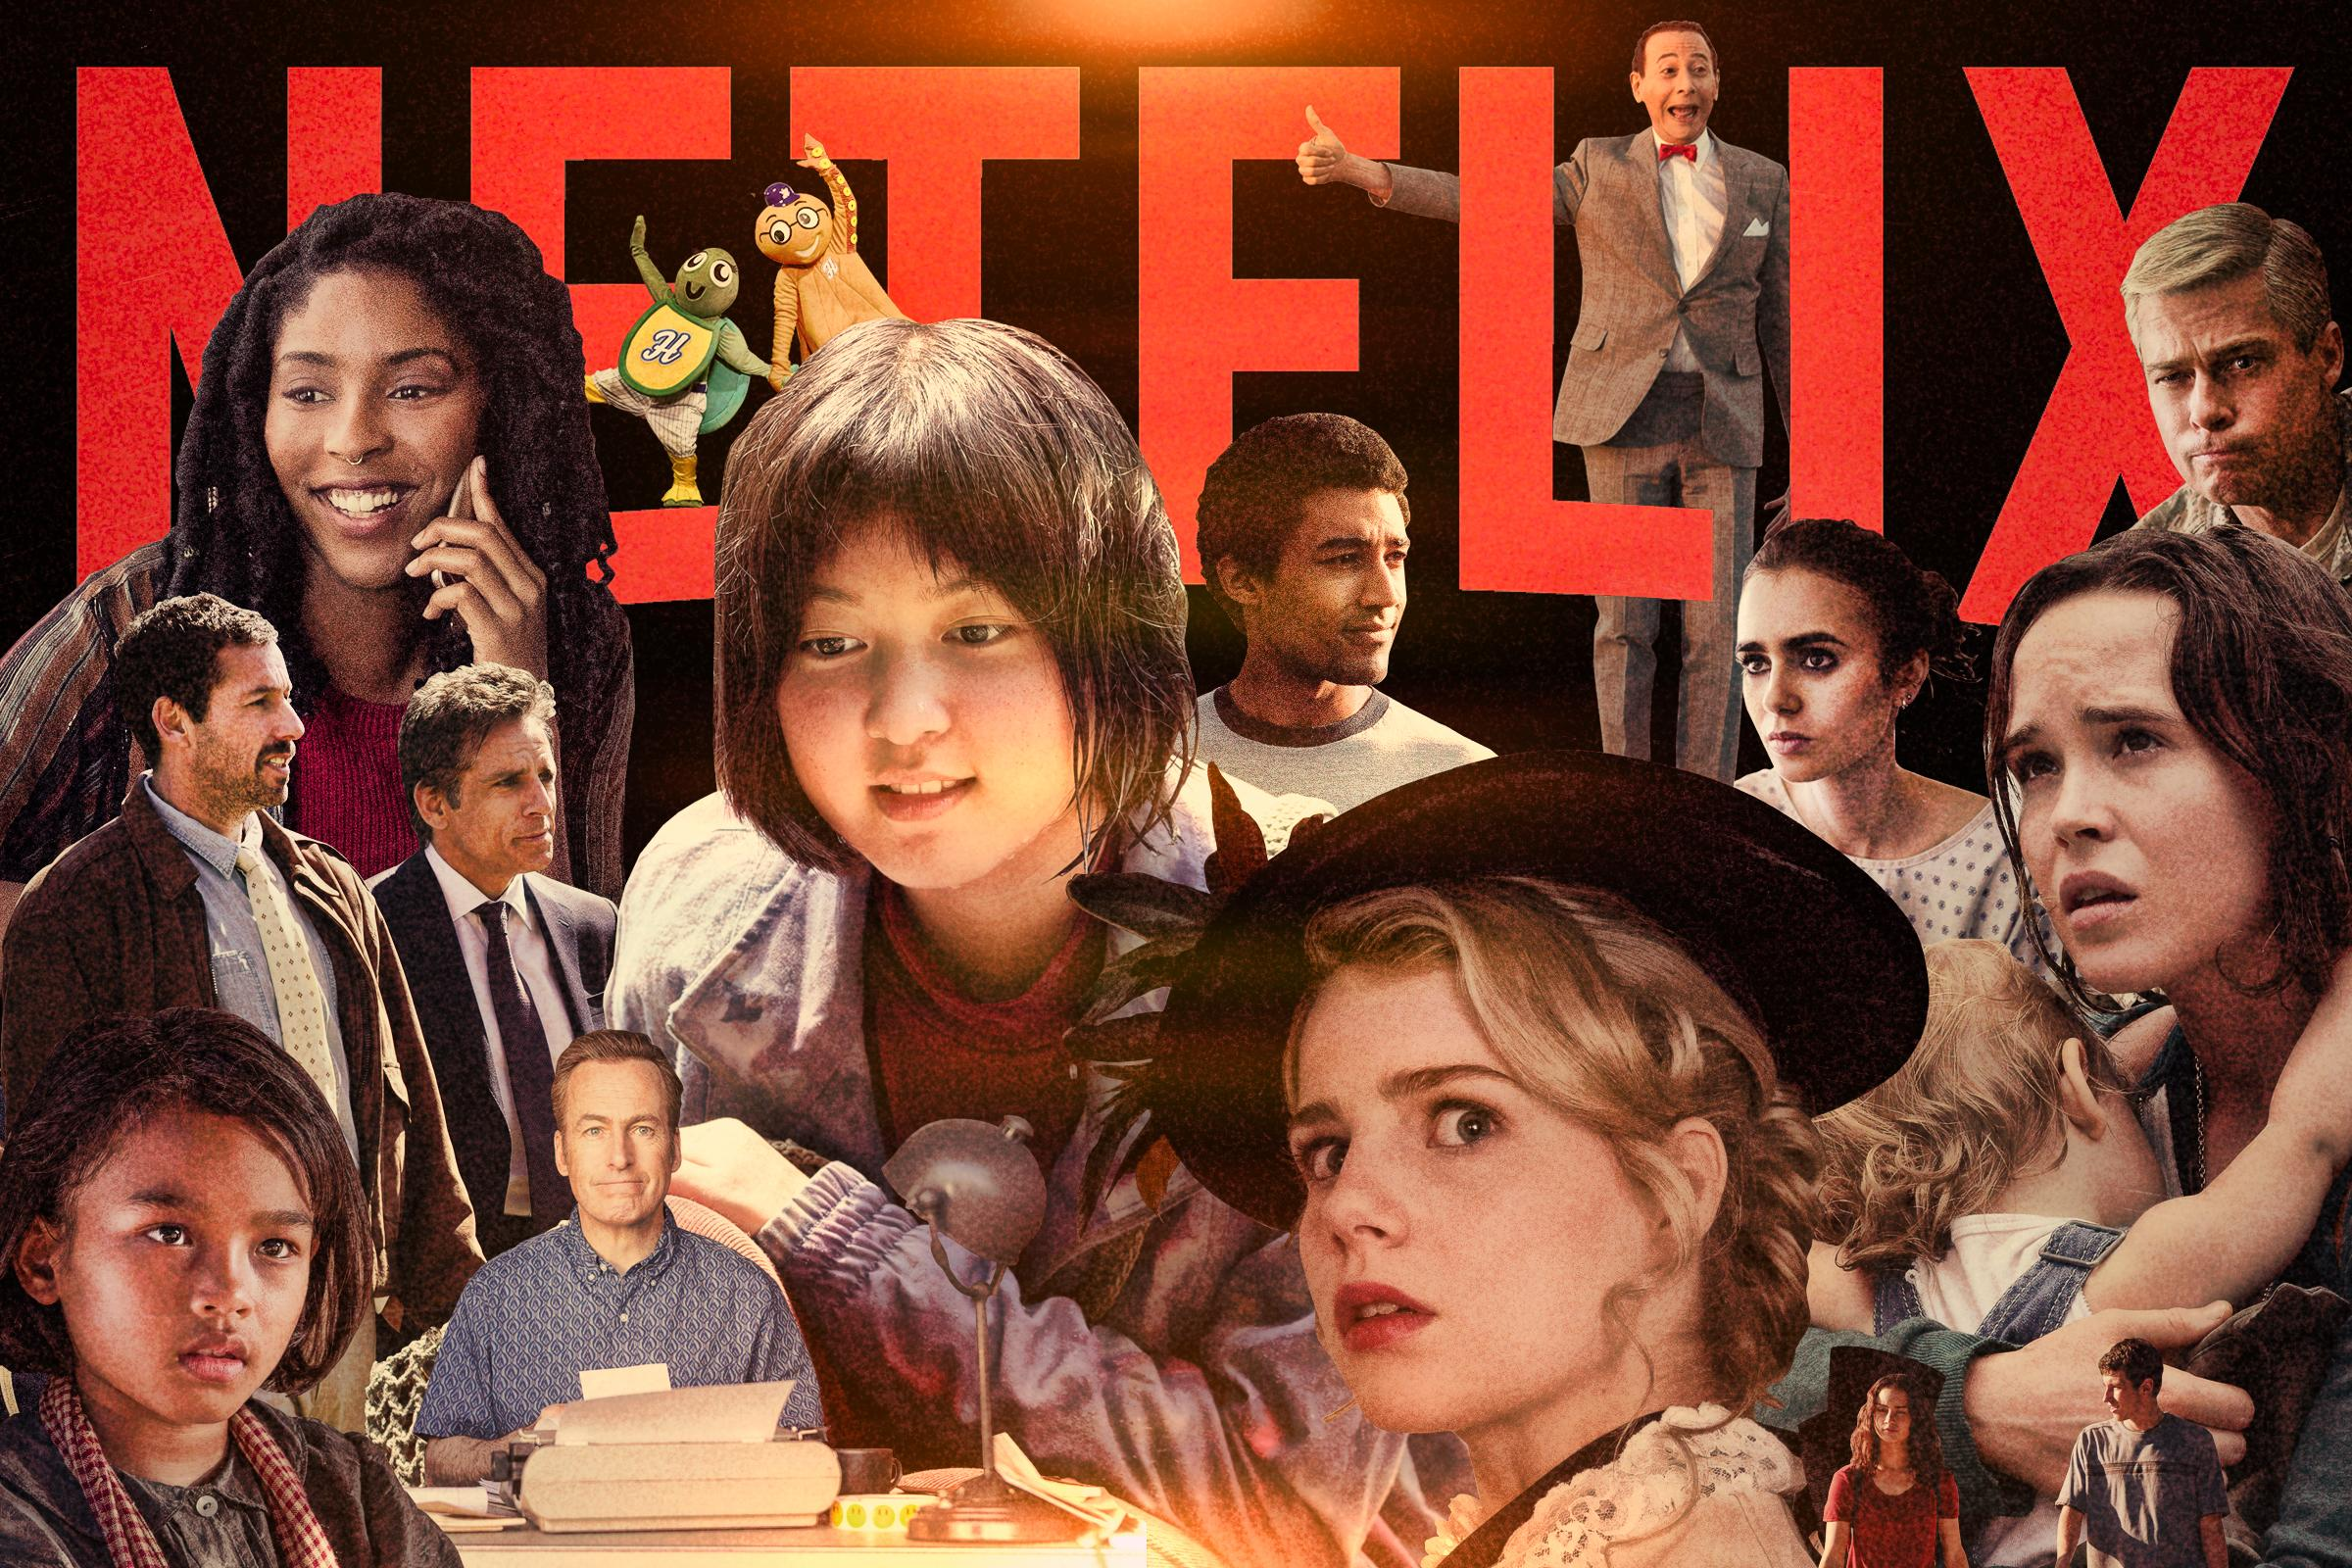 Cult actors. Leon - Aesthetic gangster drama from Luc Besson 11